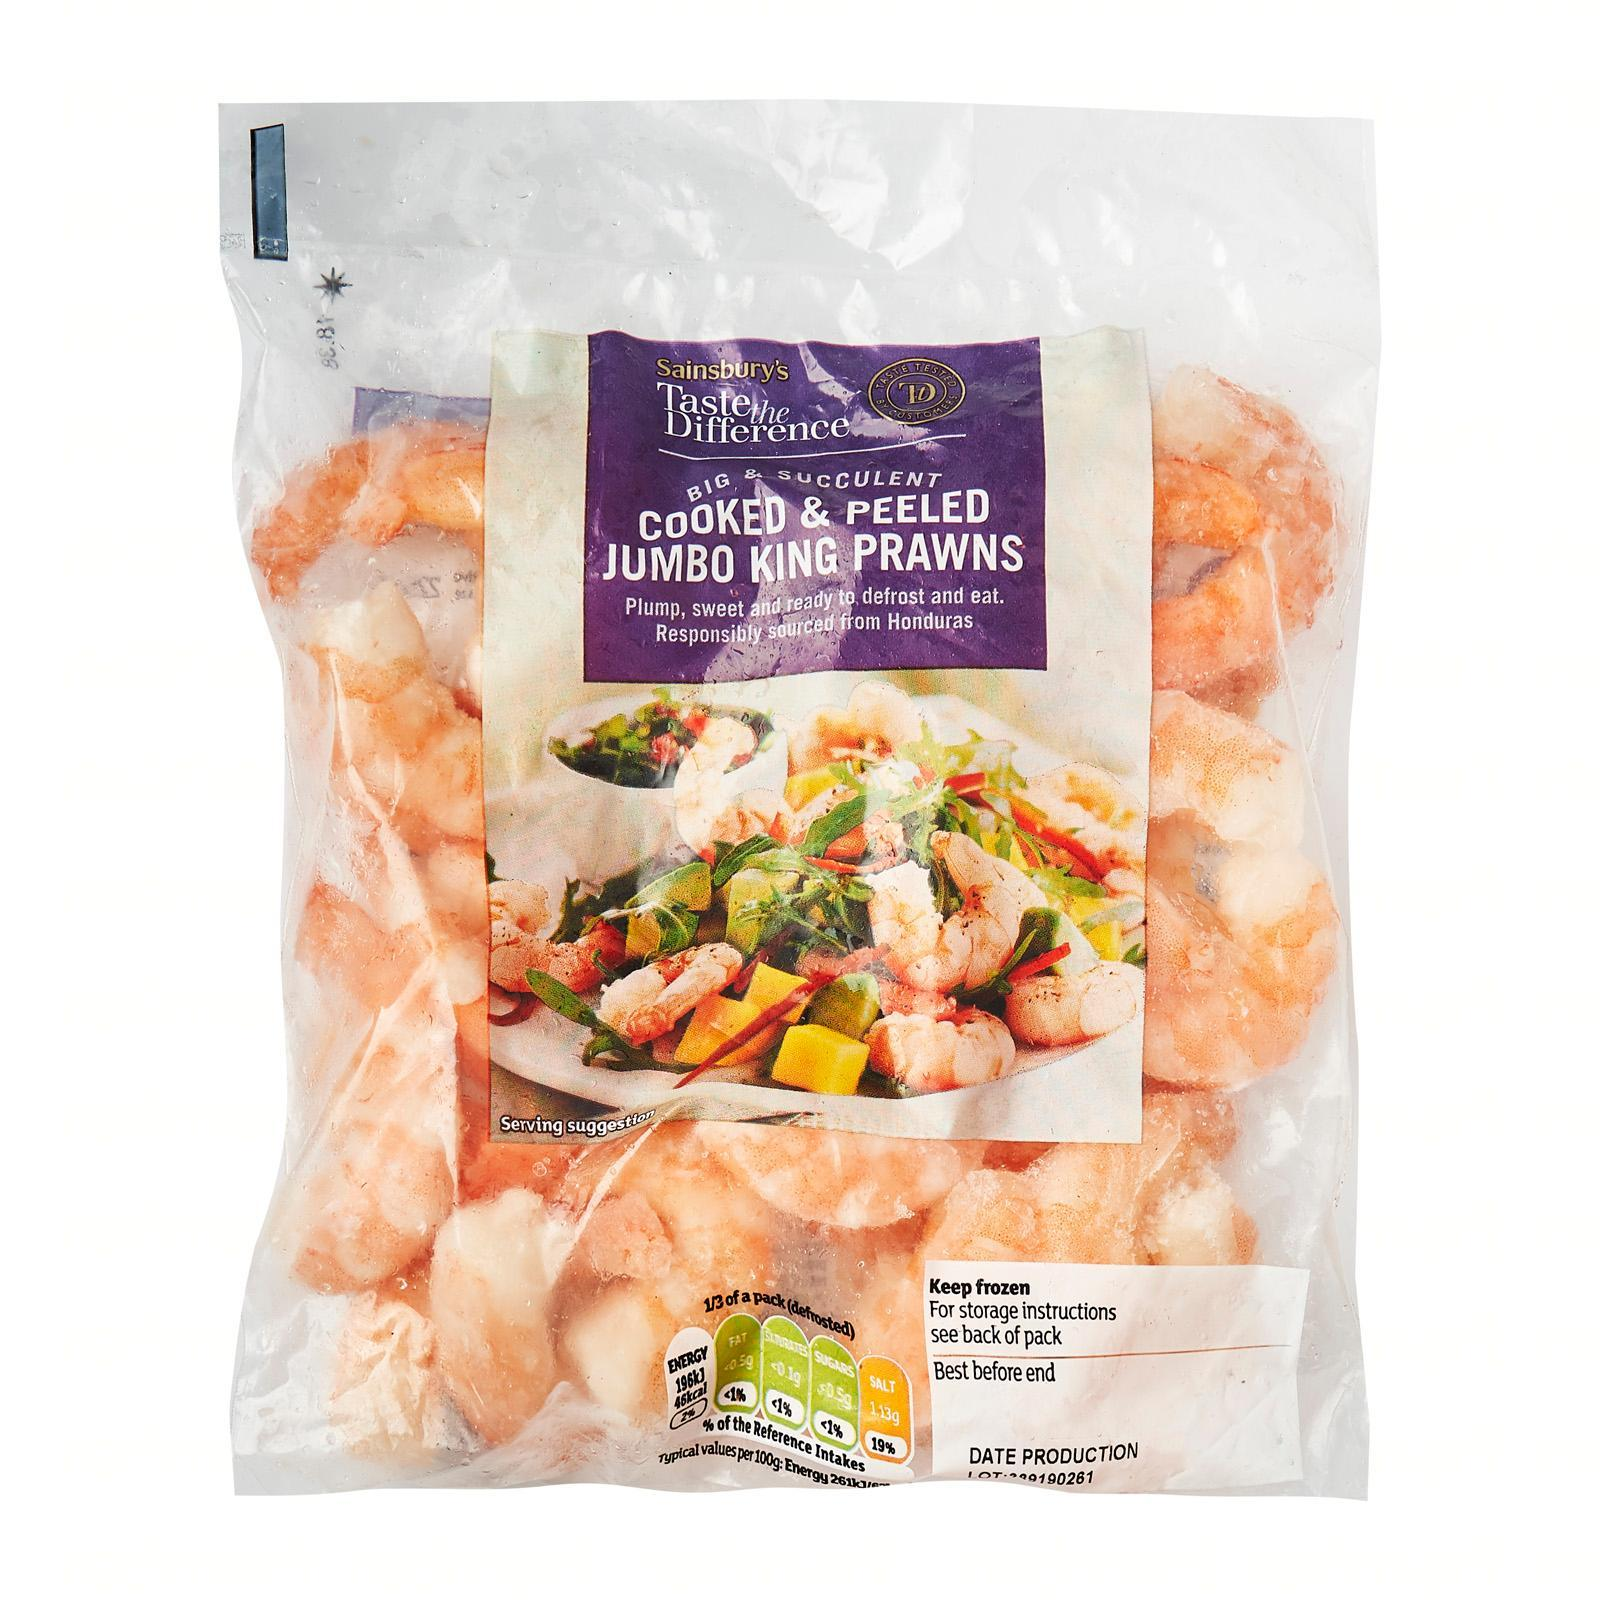 Sainsbury's Taste The Difference Cooked And Peeled Jumbo King Prawns - Frozen